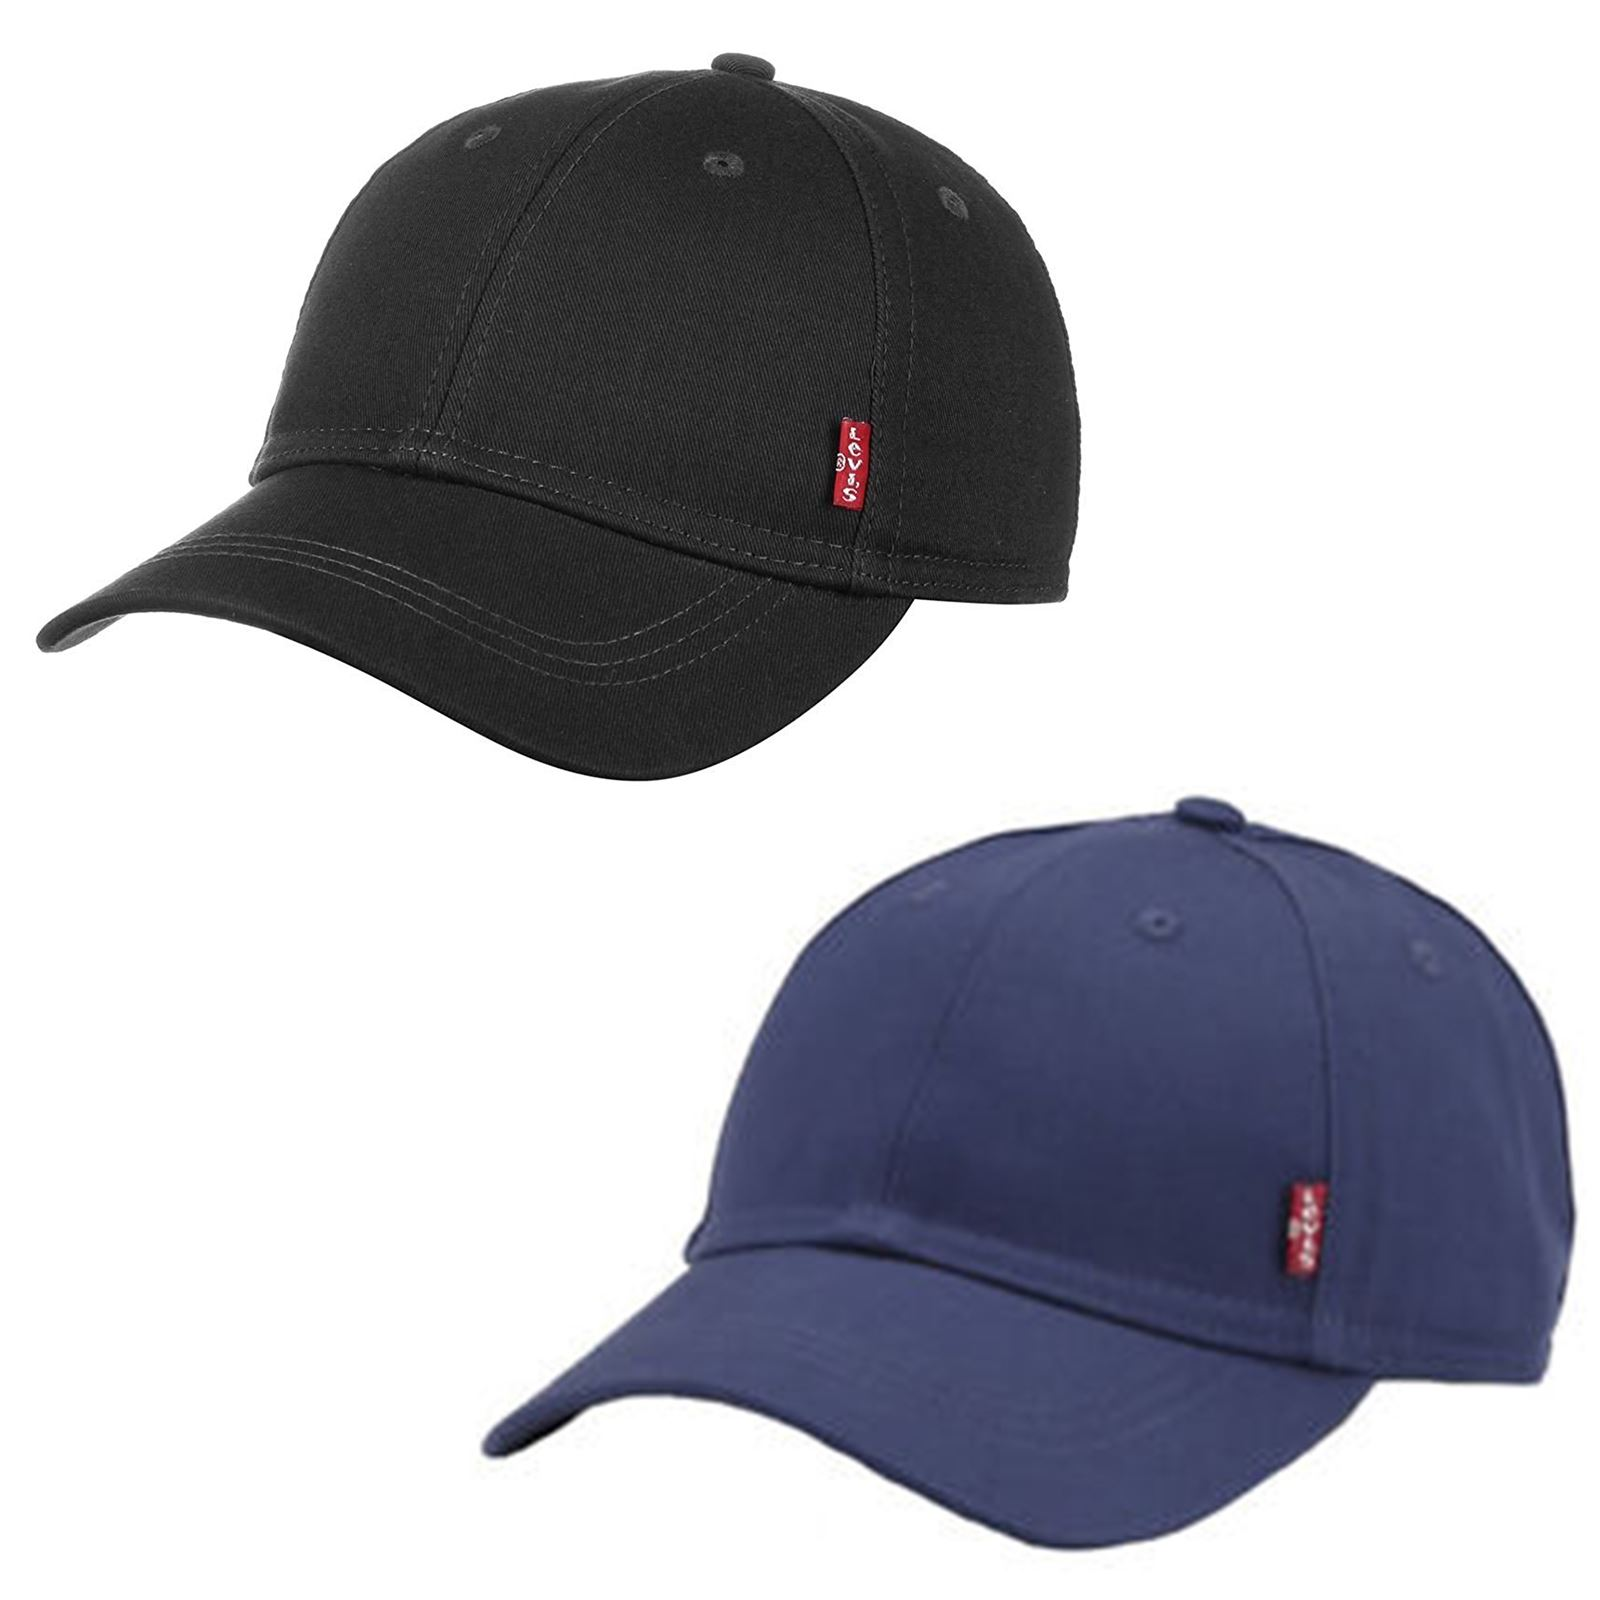 e64d6ba6 Details about Levis Classic Twill Red Tab Baseball Cap in Navy Blue & Black